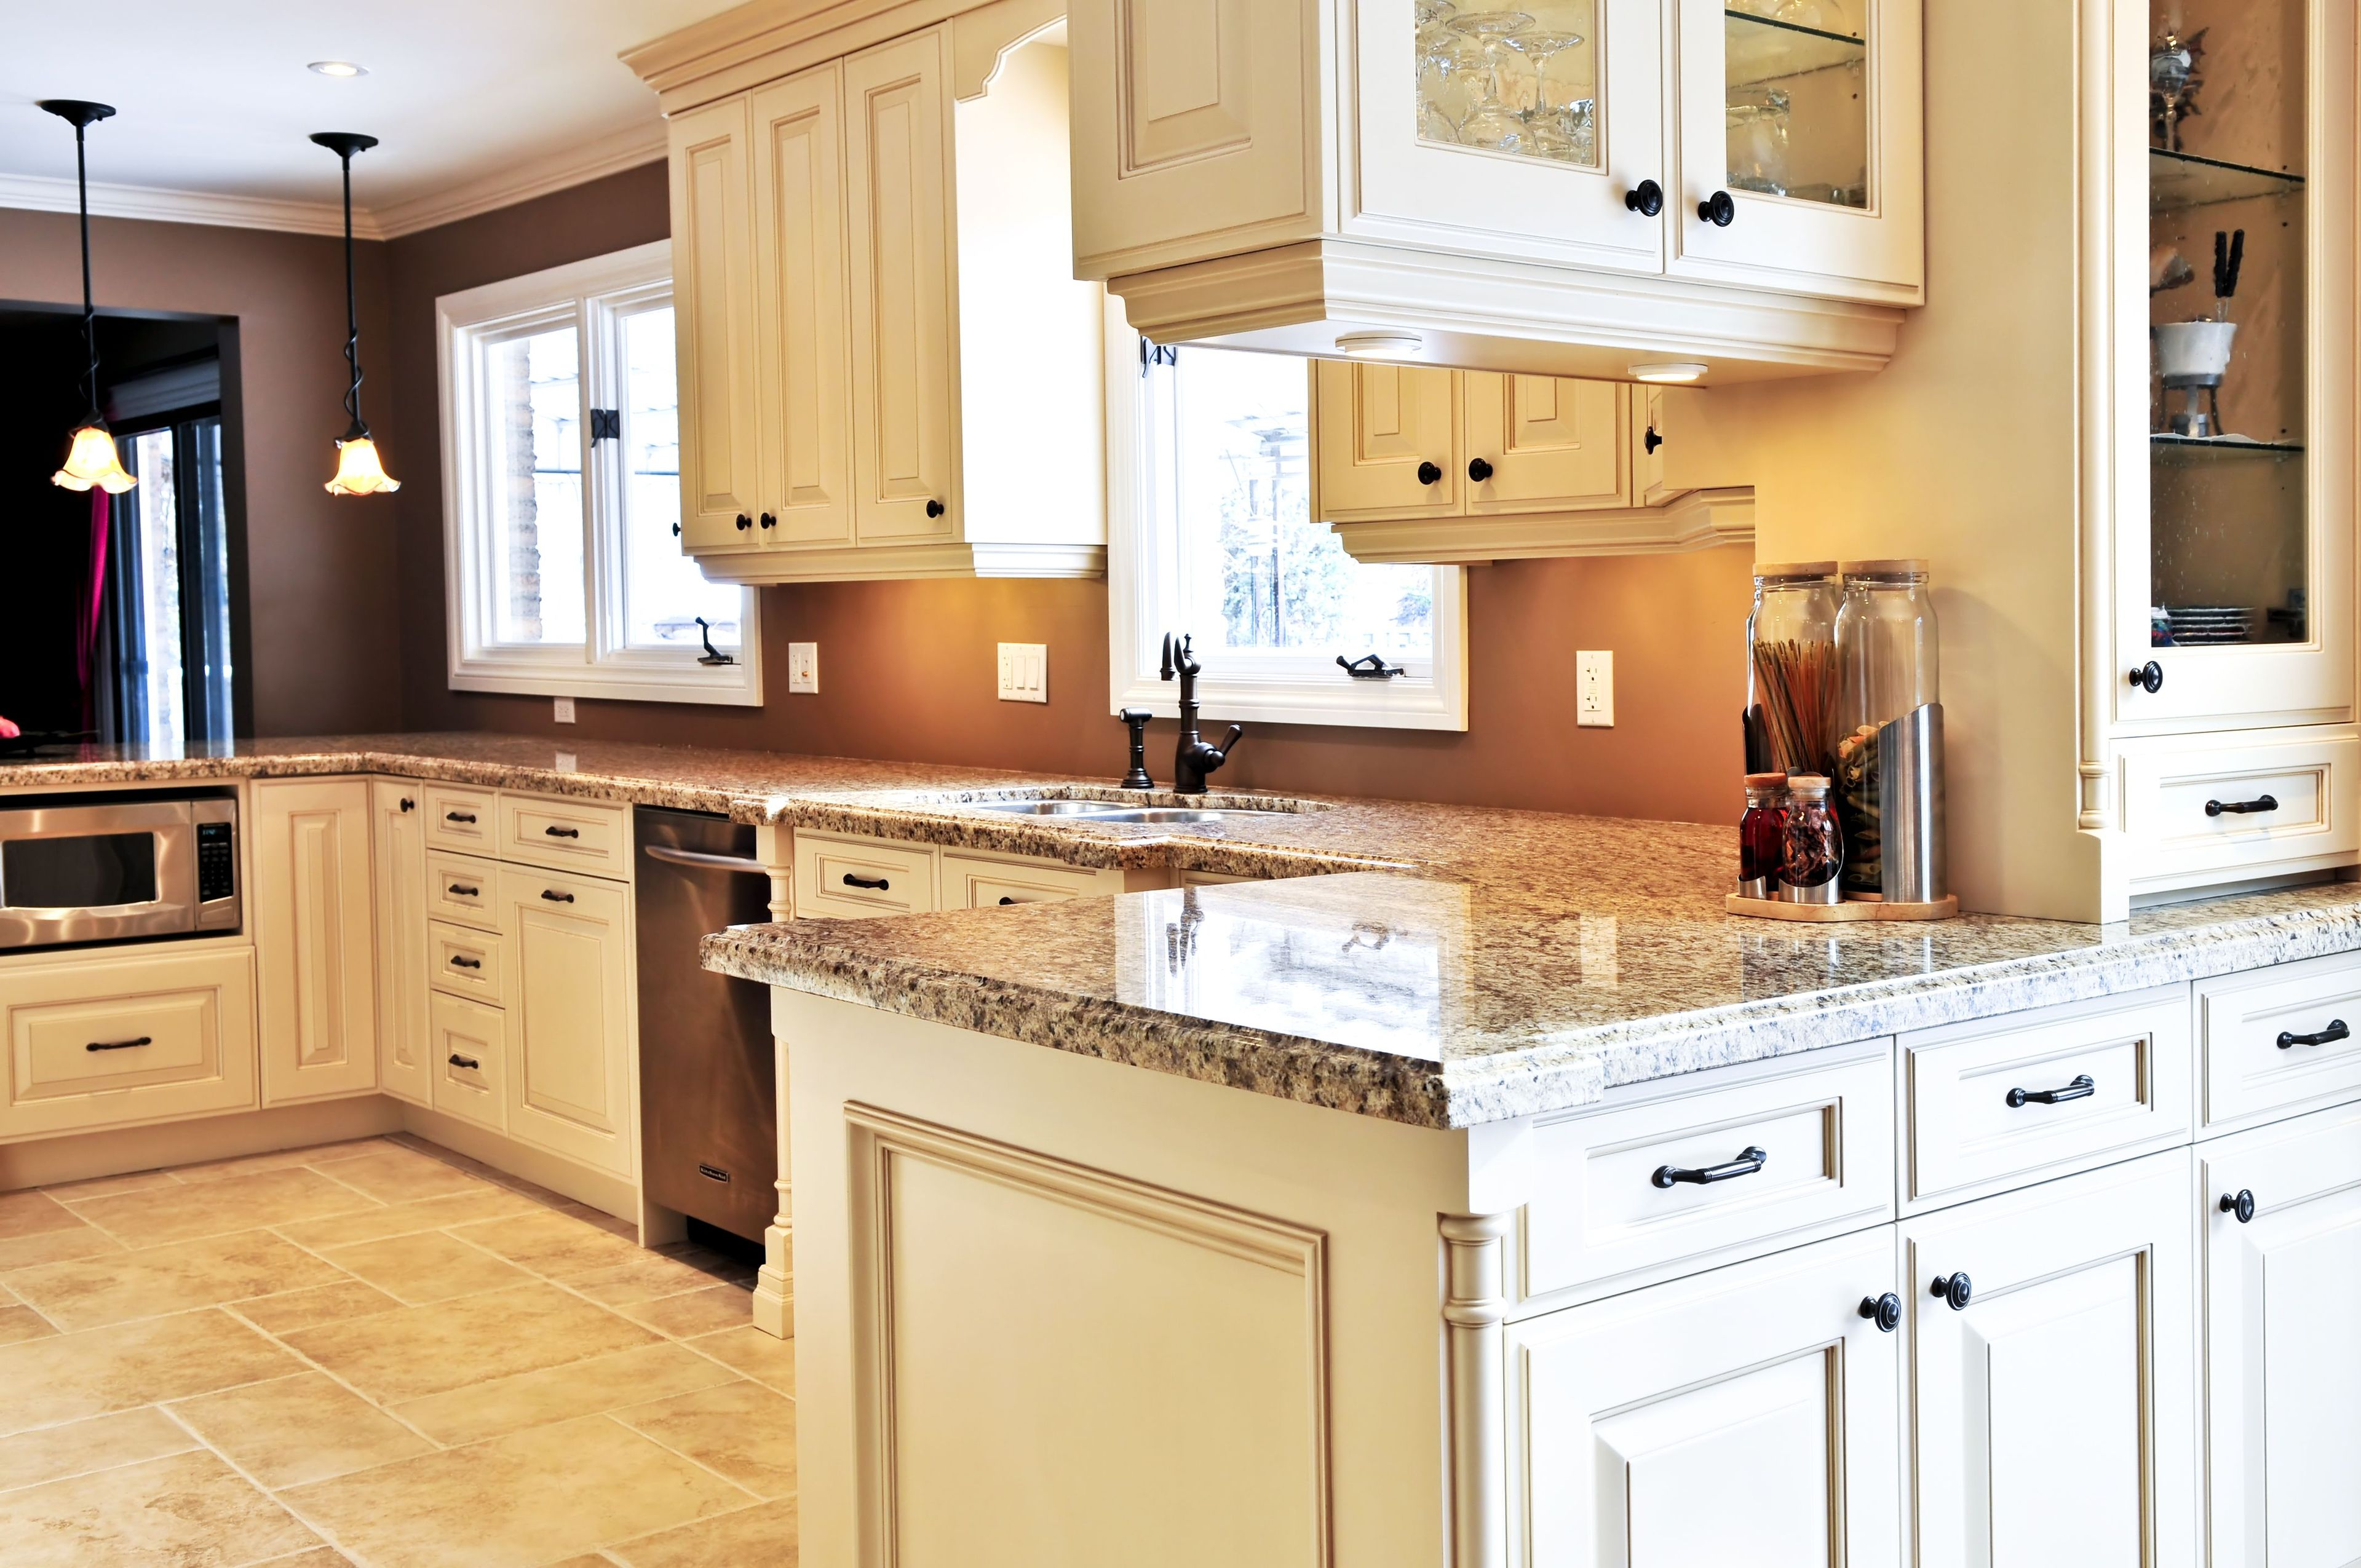 Save On Remodeling Costs By Refacing Your Kitchen Cabinets